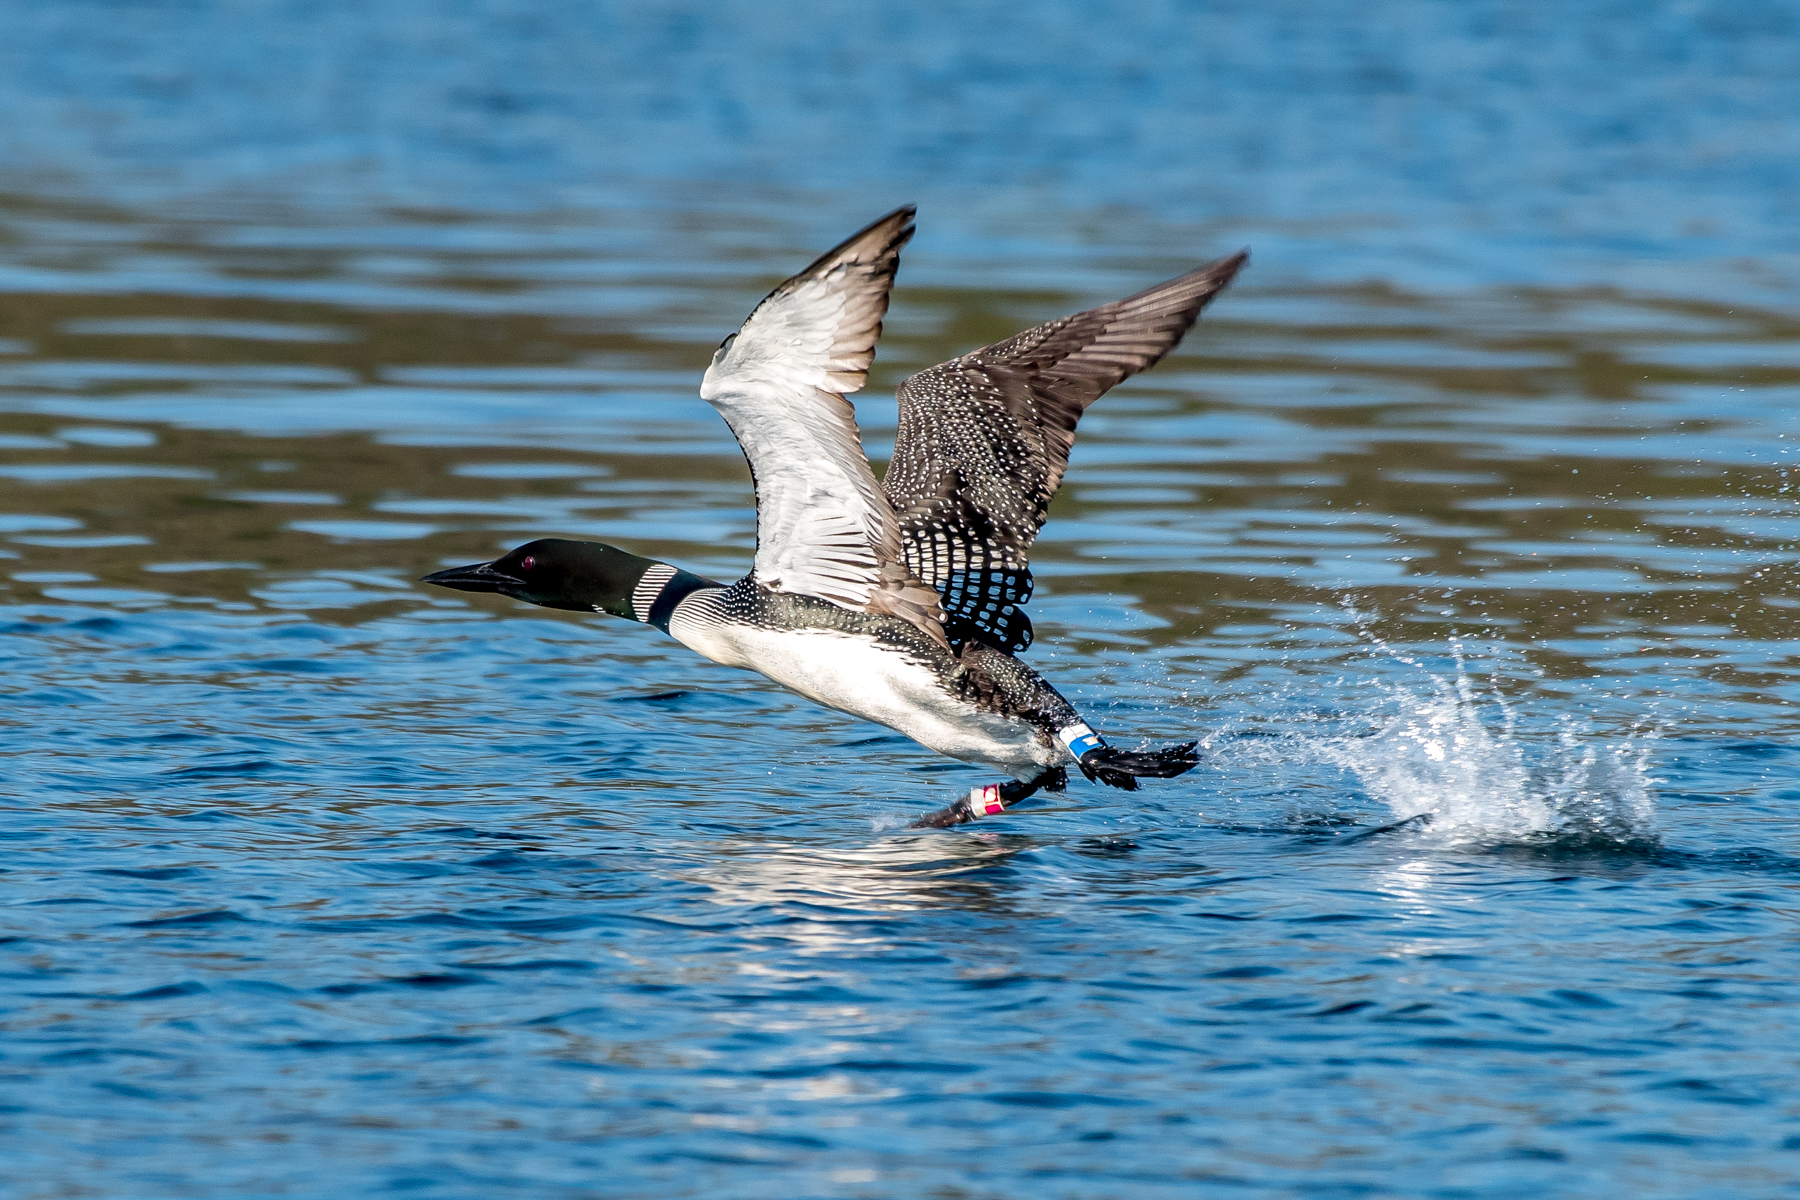 Common loons need a long way to take off from the surface of the water. Here is a loon getting up speed to take off. You can see the research bands on this legs of this bird.... 7/6/16